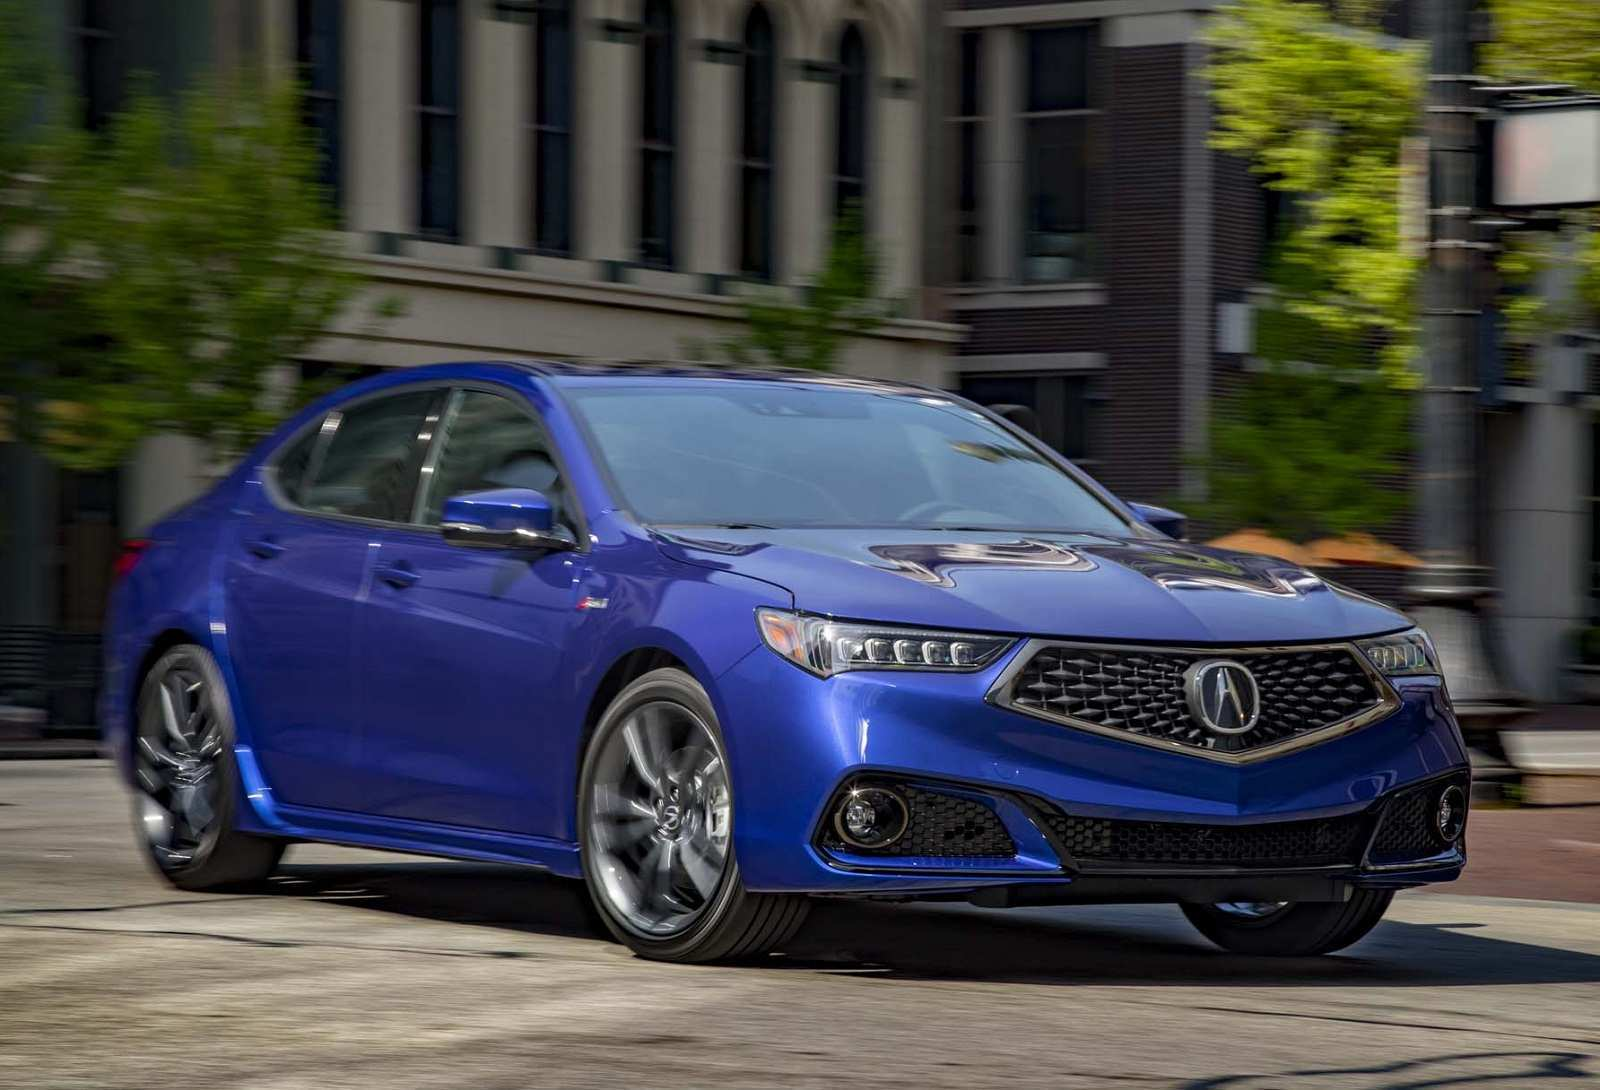 95 The Best 2019 Acura Tlx Rumors Pictures